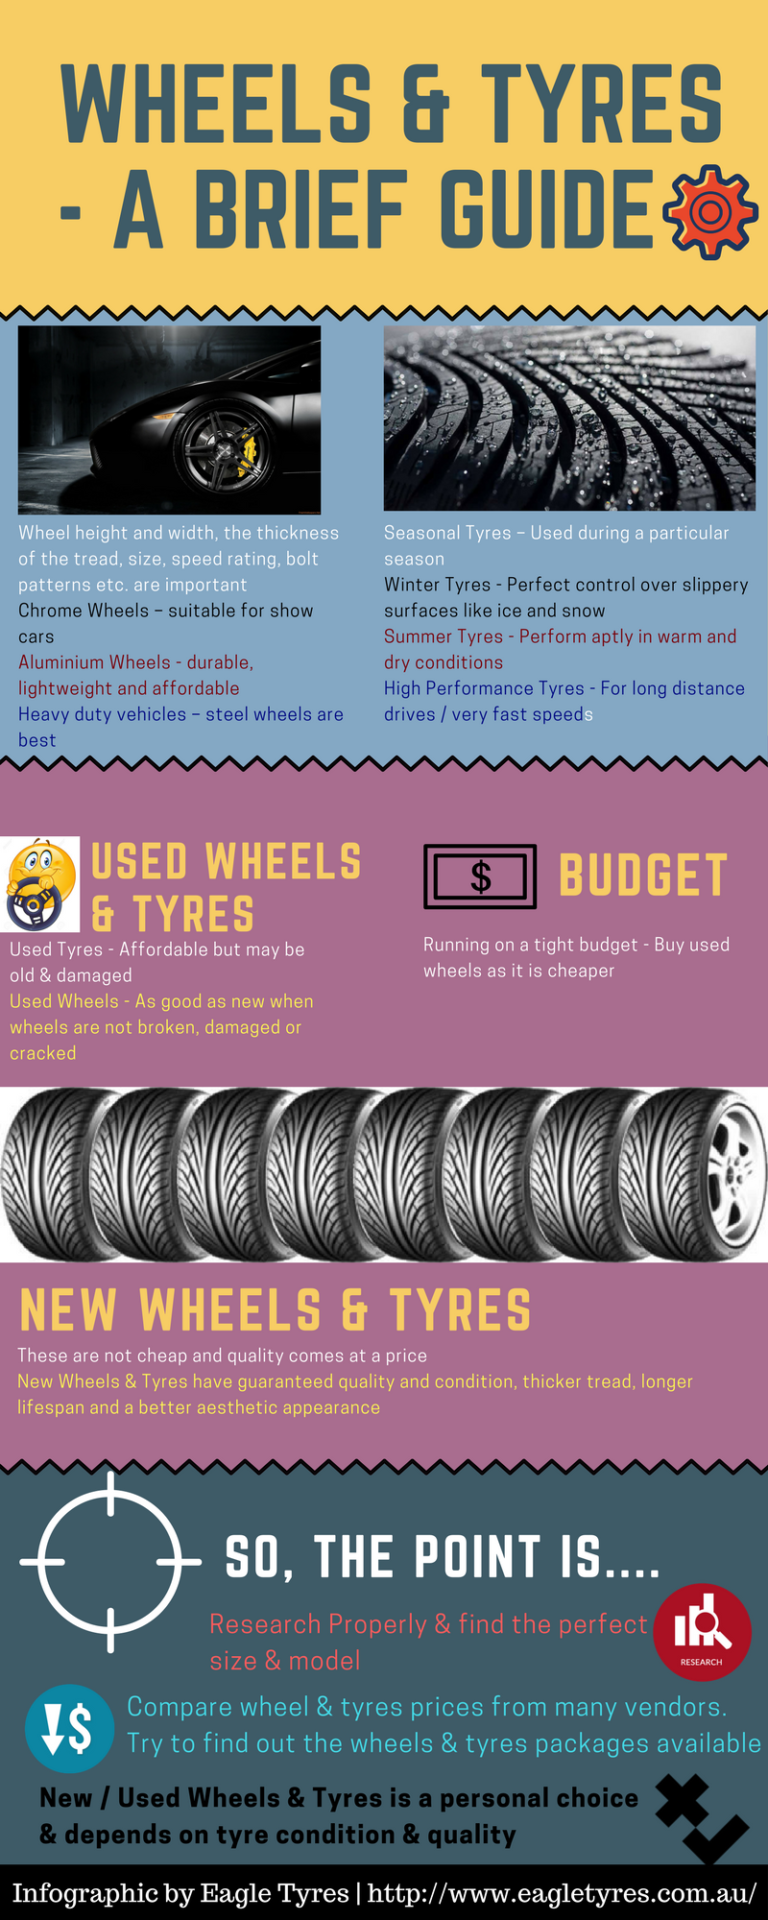 Points To Consider When Buying Wheels & Tyres